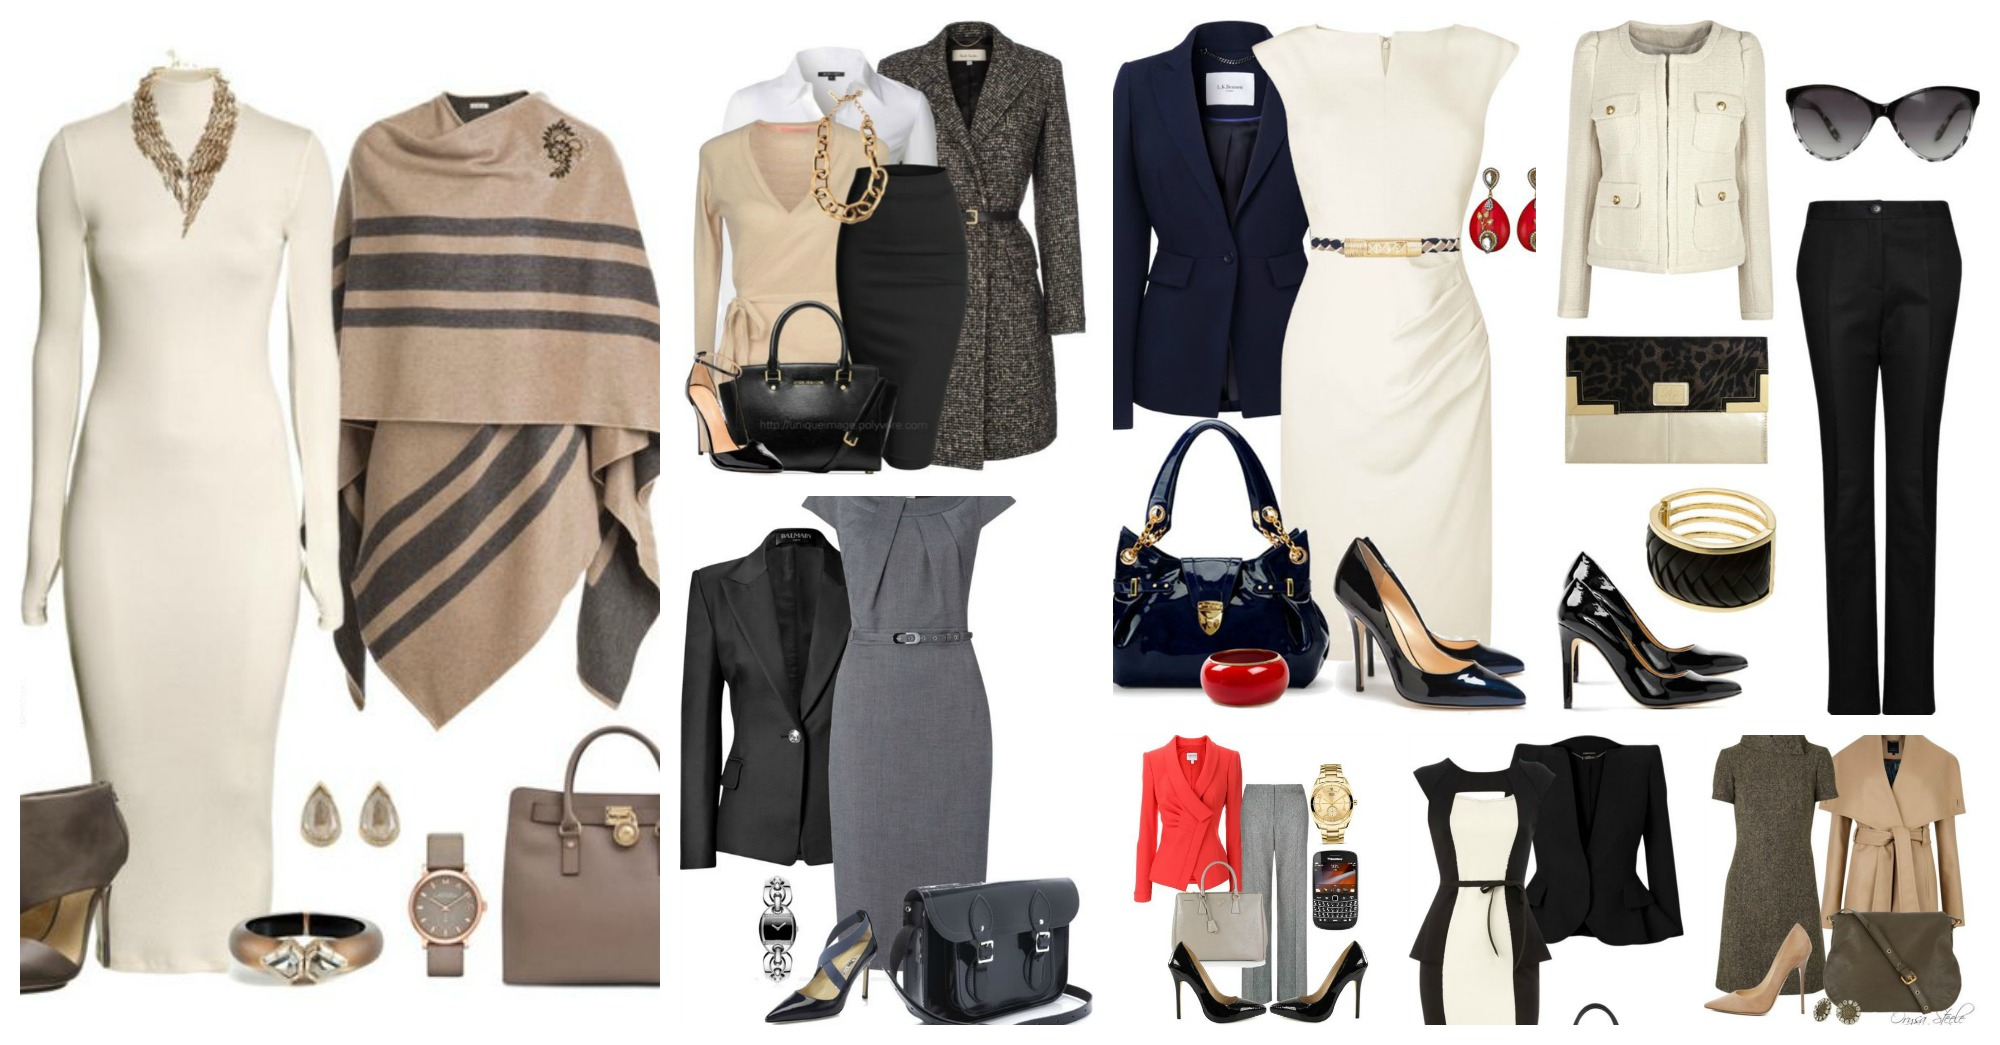 Modern Winter Polyvore Outfits to Wear to Work